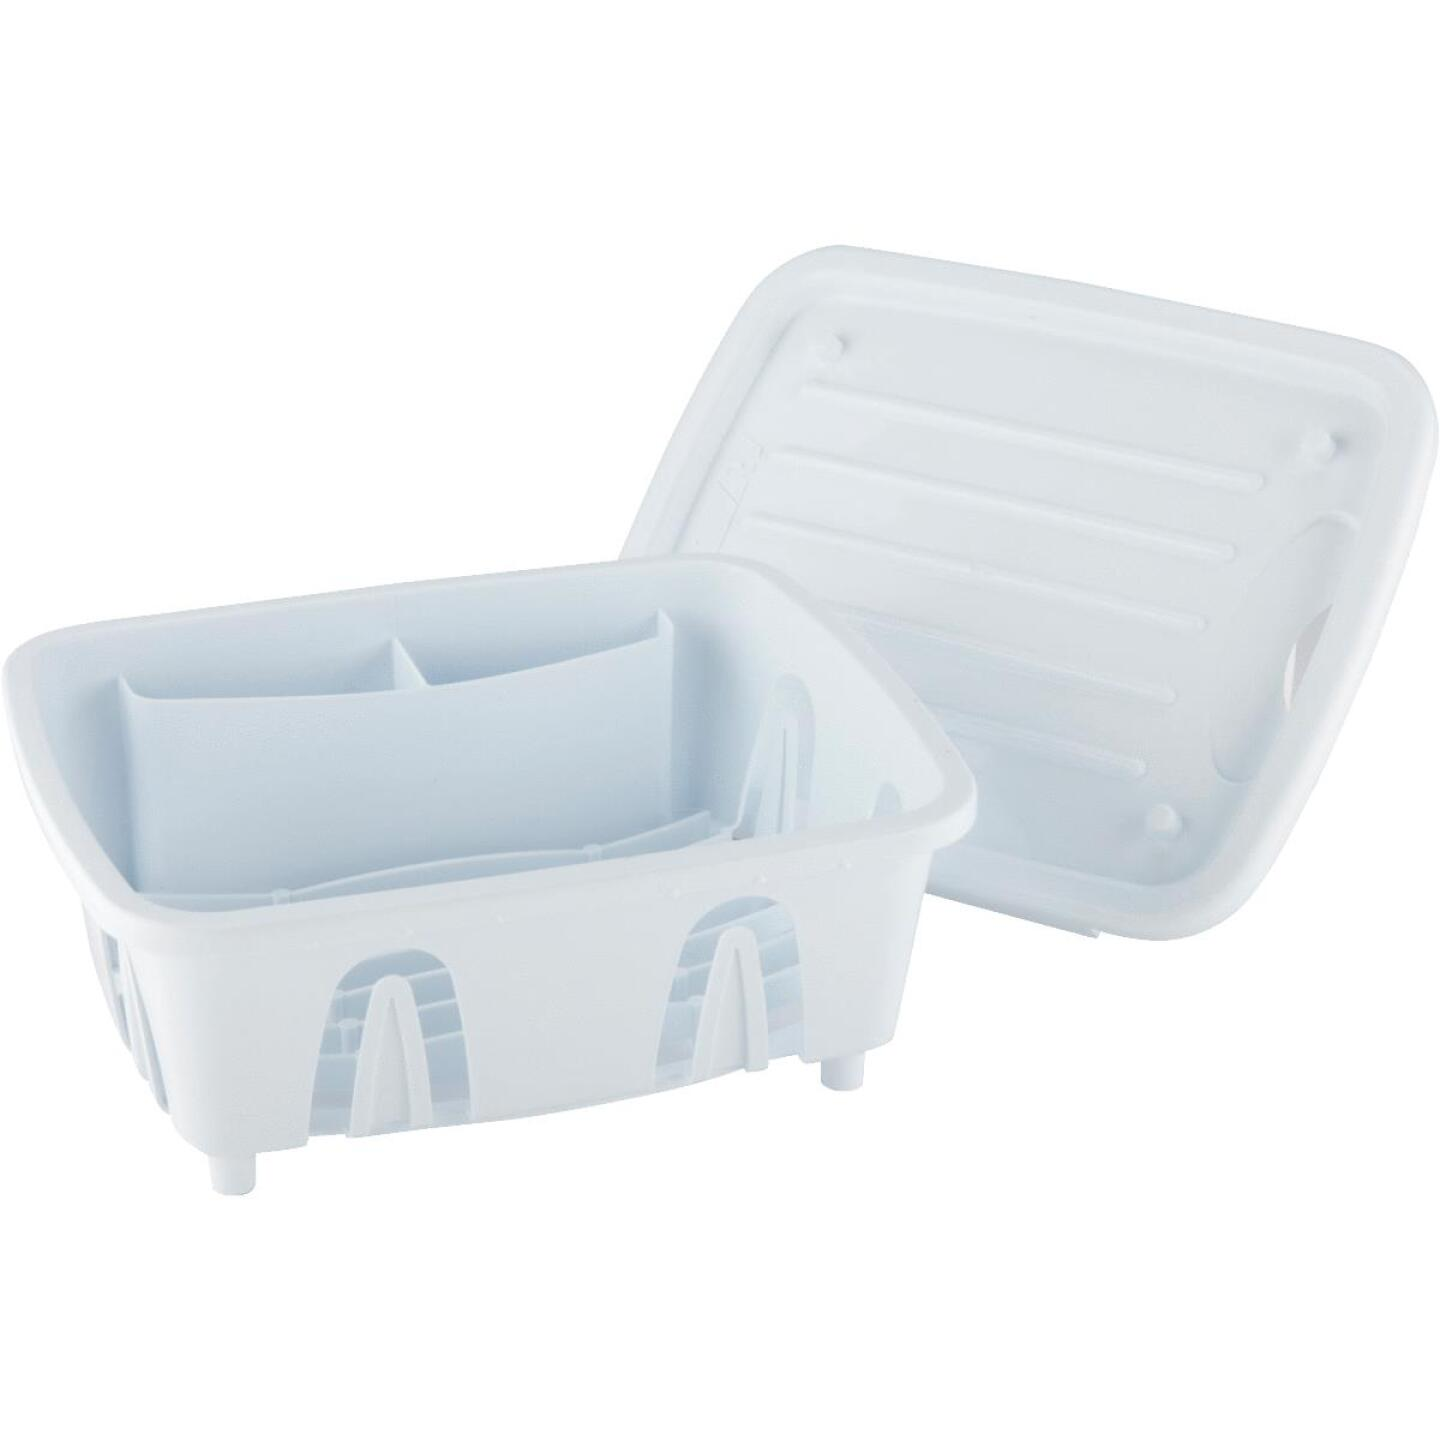 Camco Heavy Duty Plastic 9 50 In X 11 69 In White Rv Dish Drainer Do It Best World S Largest Hardware Store